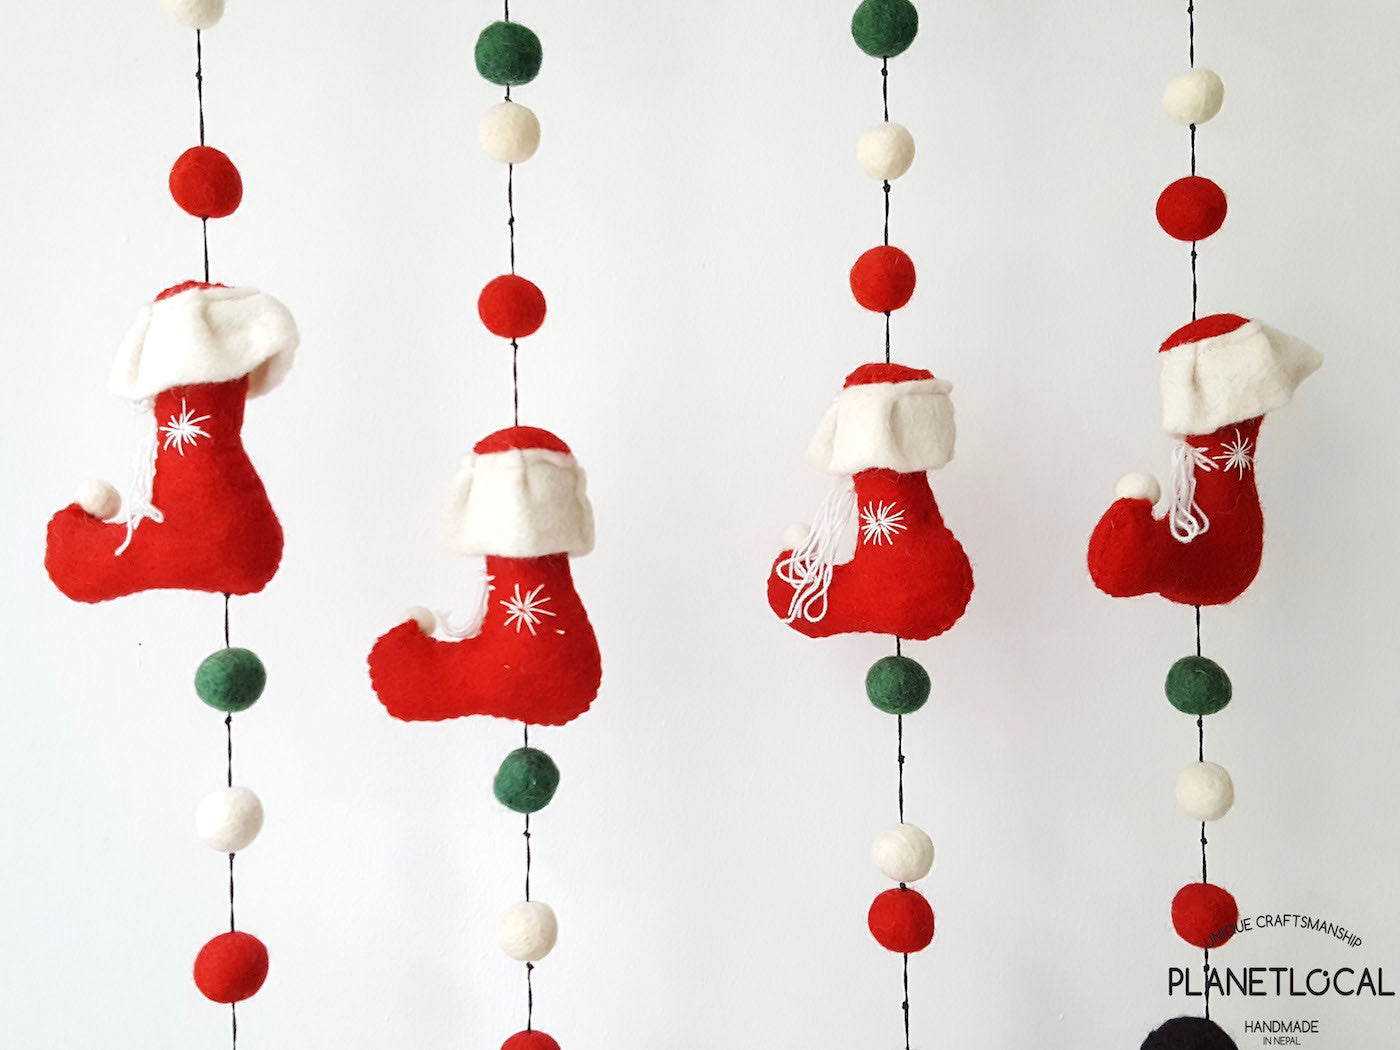 Handmade Christmas Wall Hanging Decor With Santa Claus